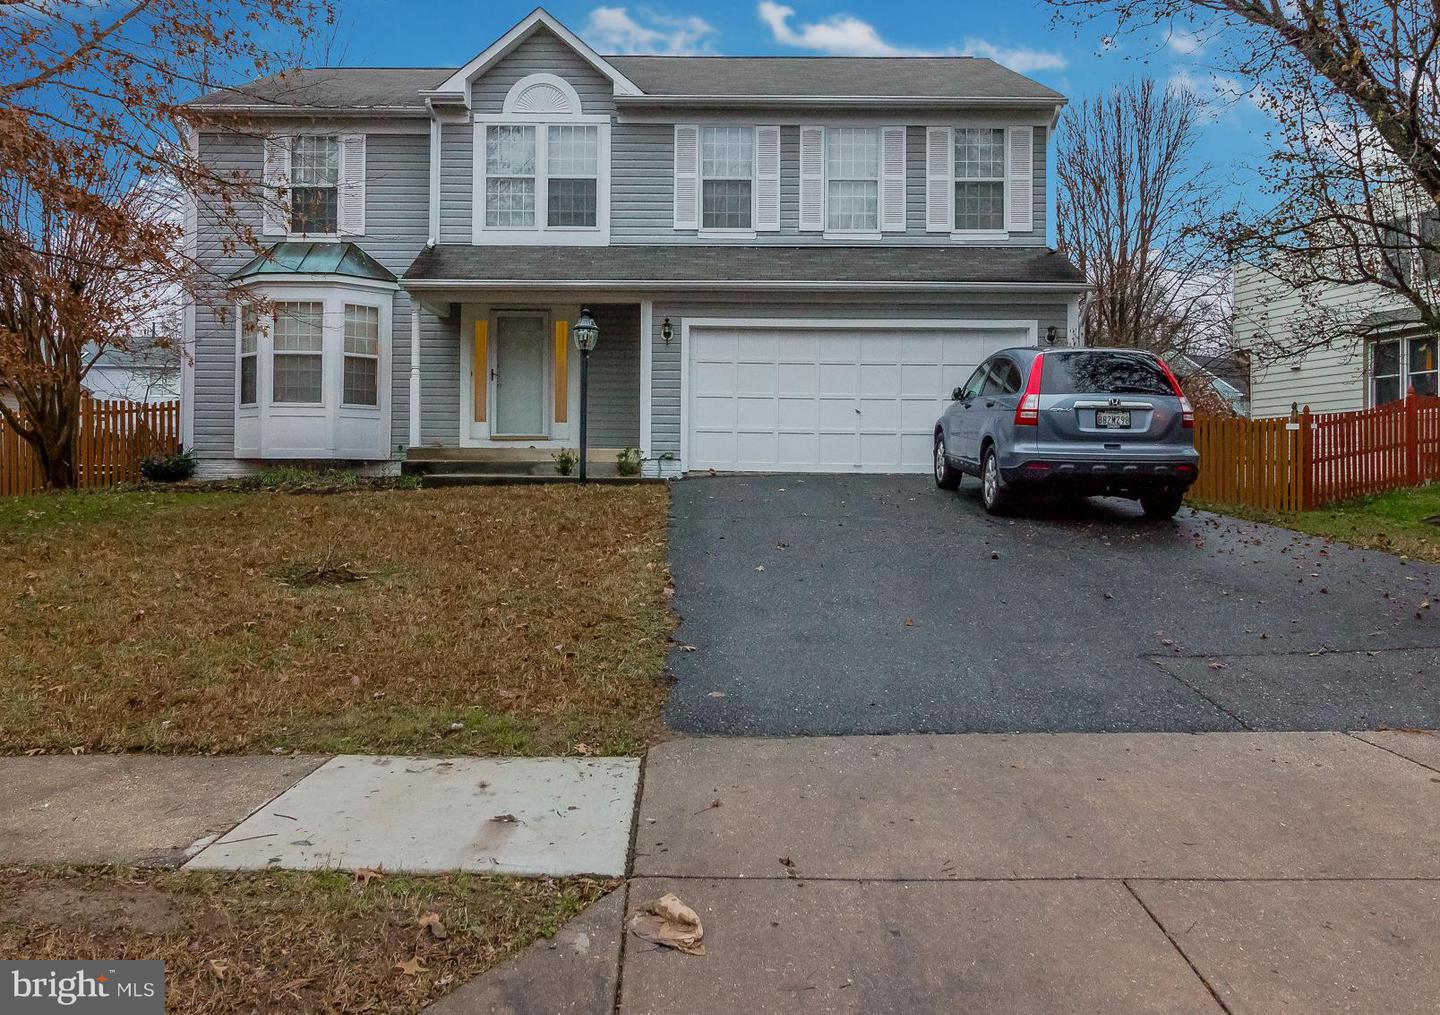 14200 PLEASANT VIEW DRIVE, BOWIE, Maryland